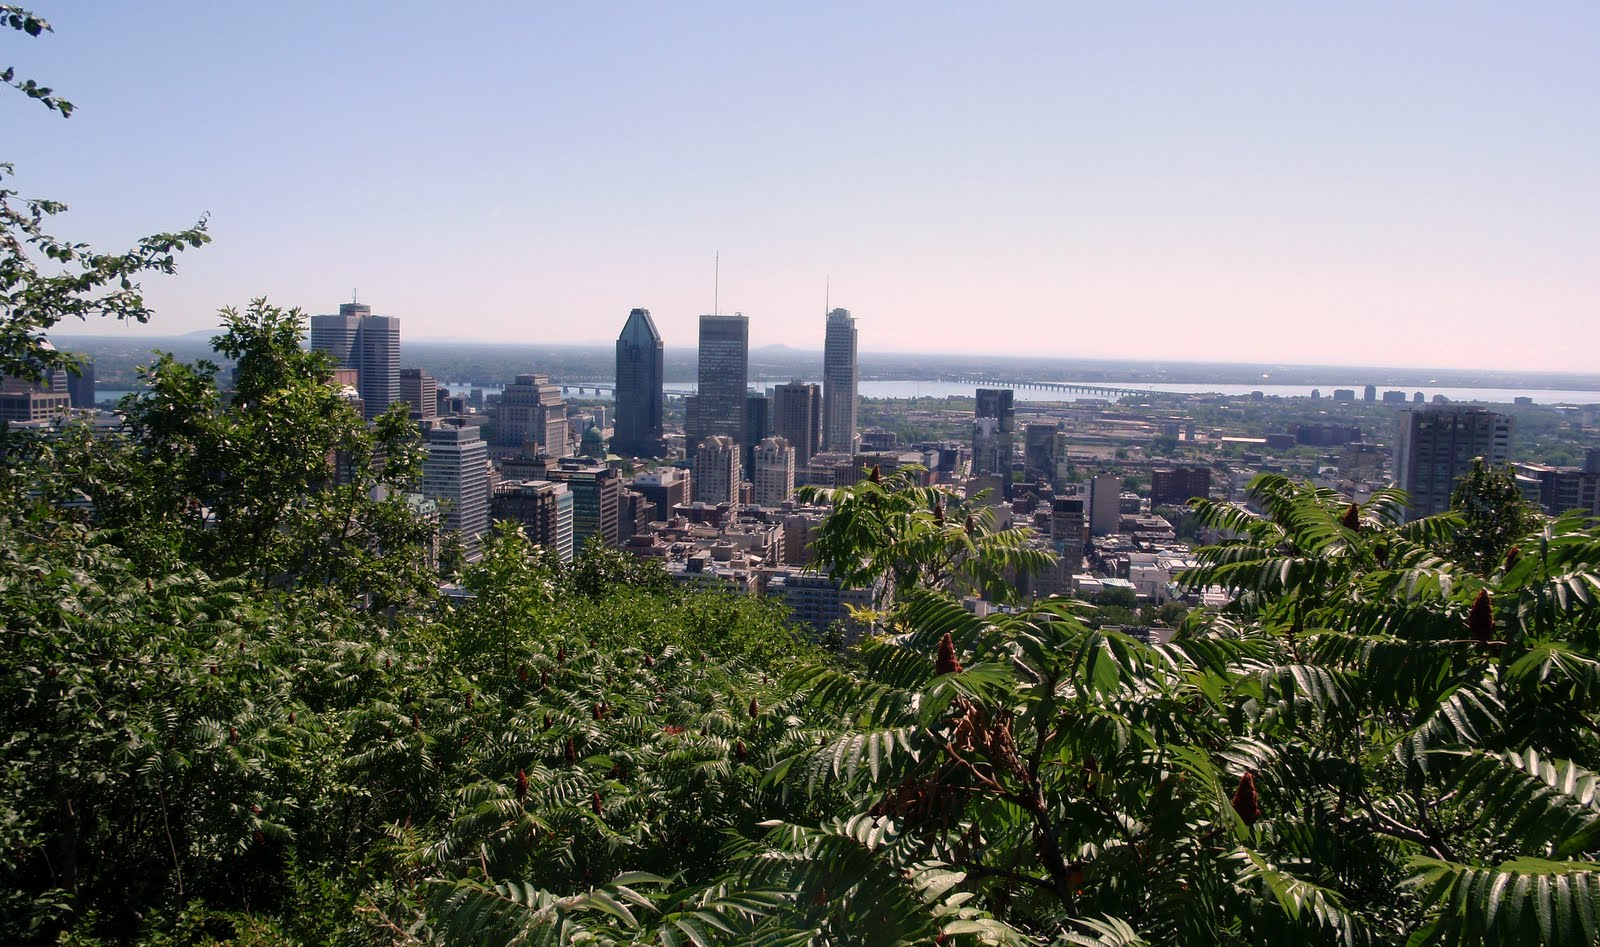 View from Mount Royal, over-looking Montreal